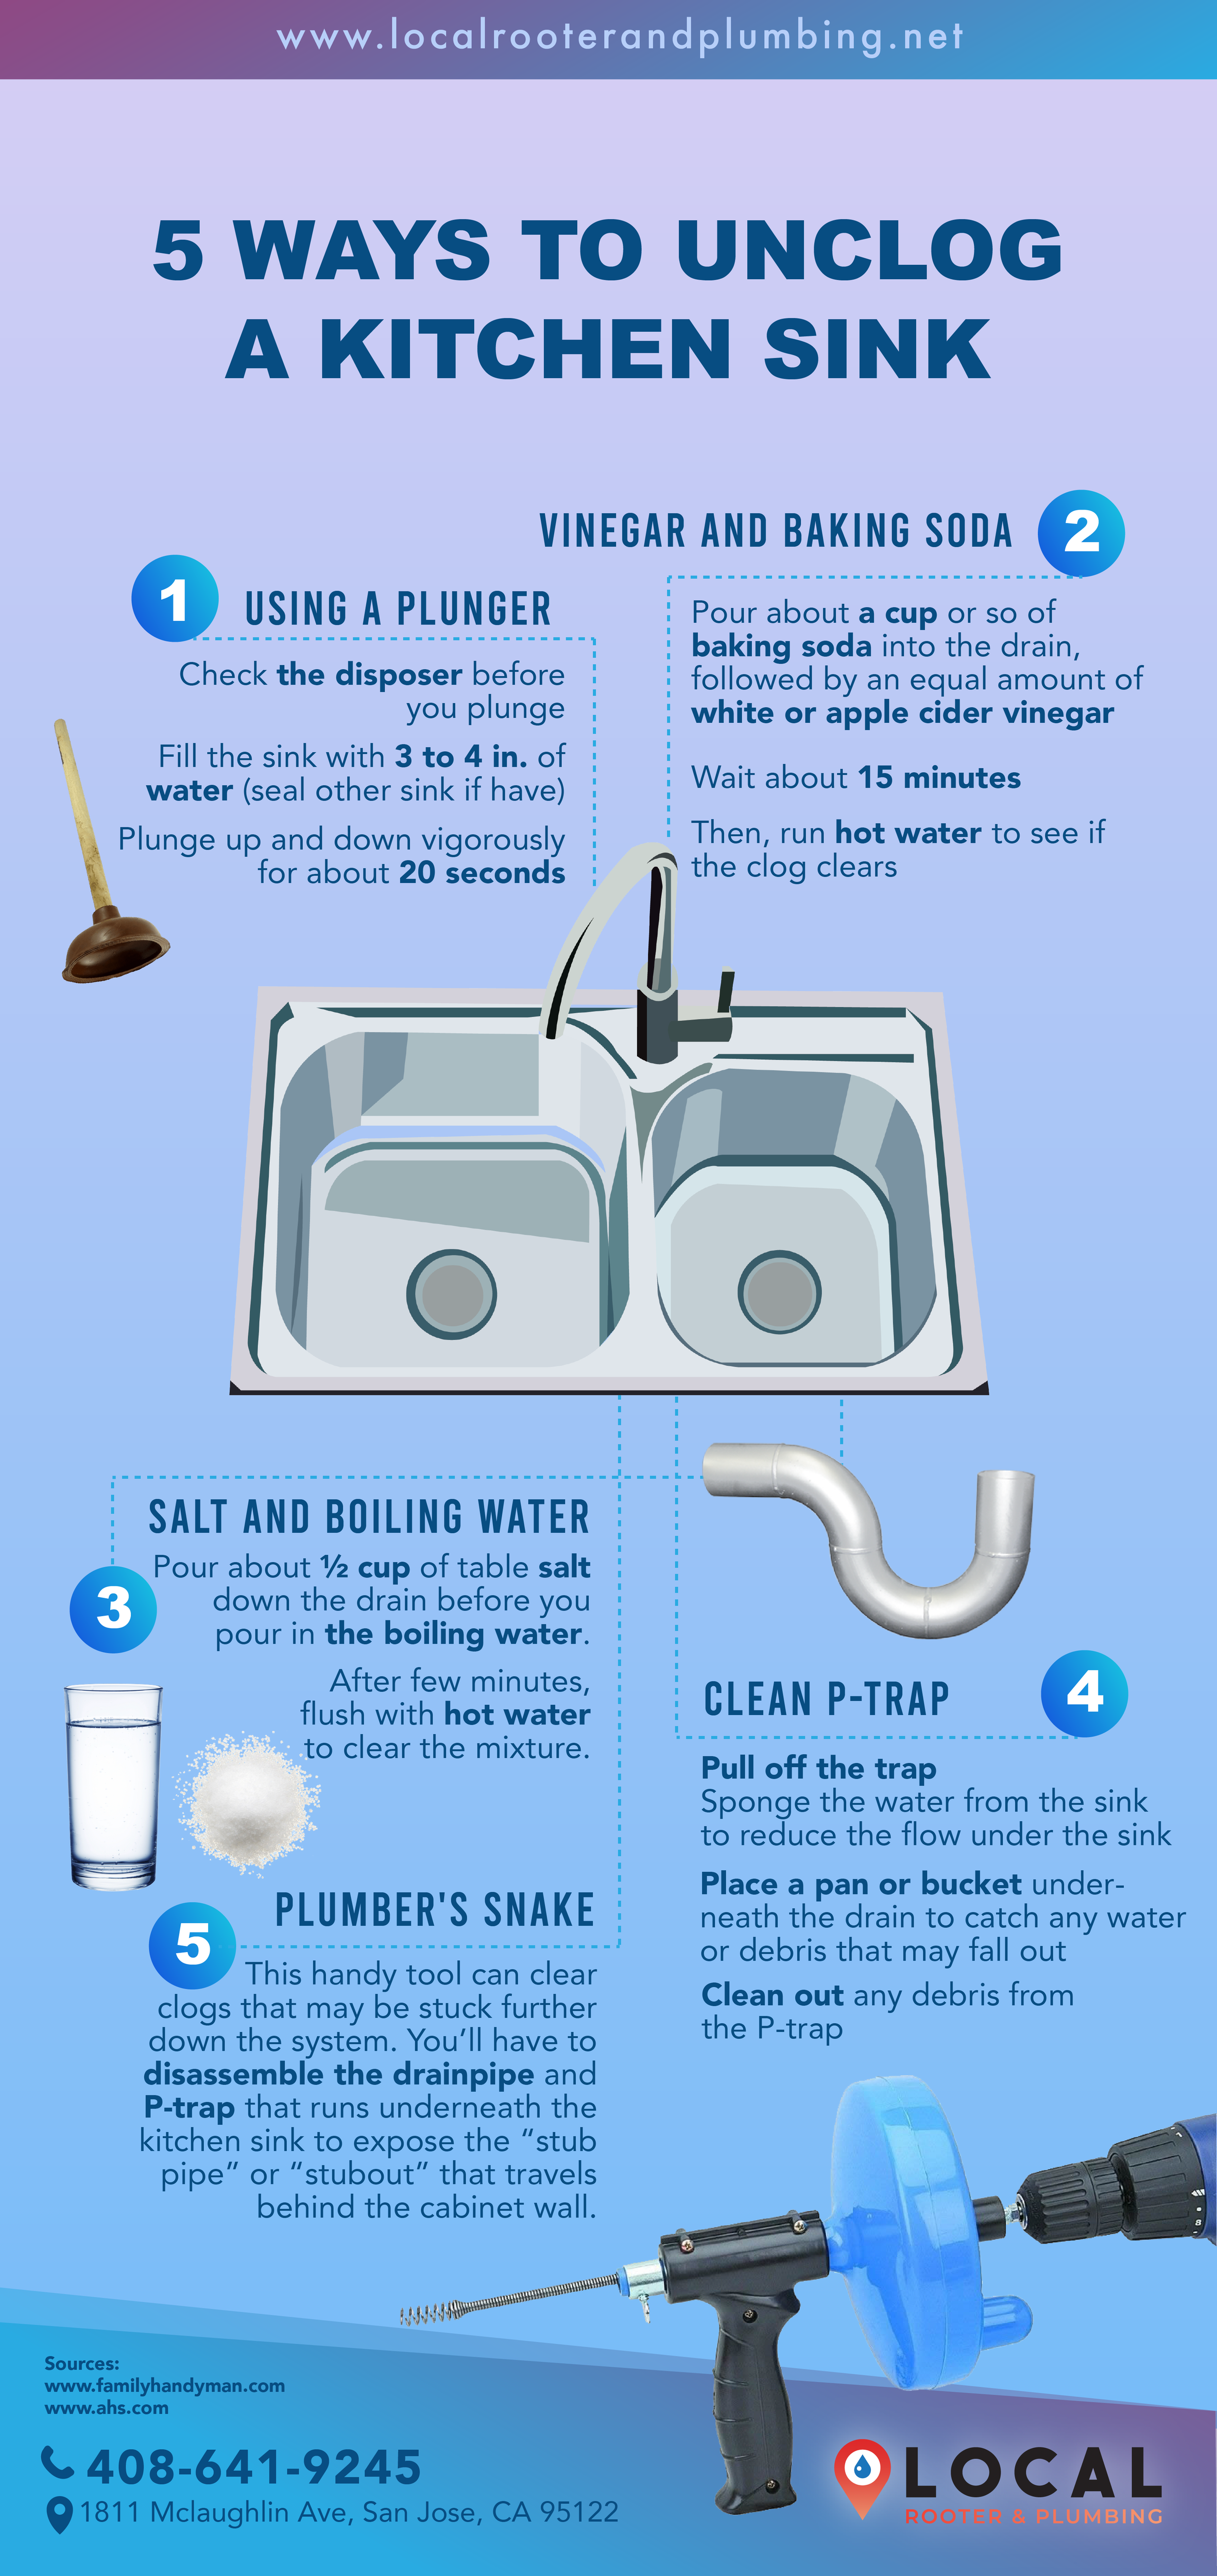 5 DIY Methods To Unclog Your Kitchen Sink (With Images